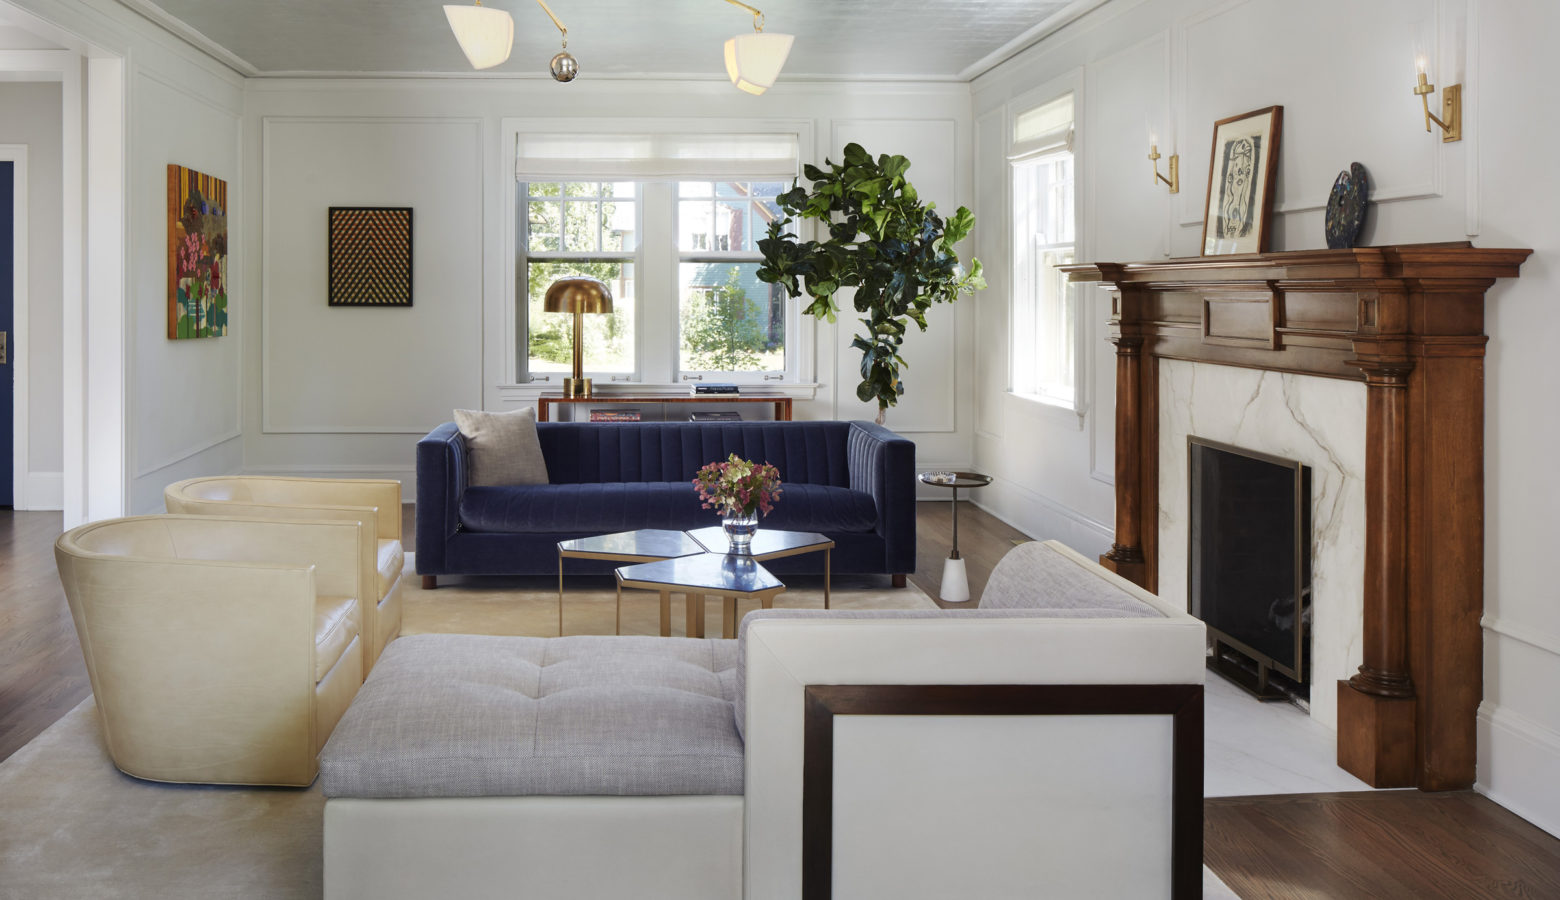 10 Interior Design Ideas to Make Your House Feel New